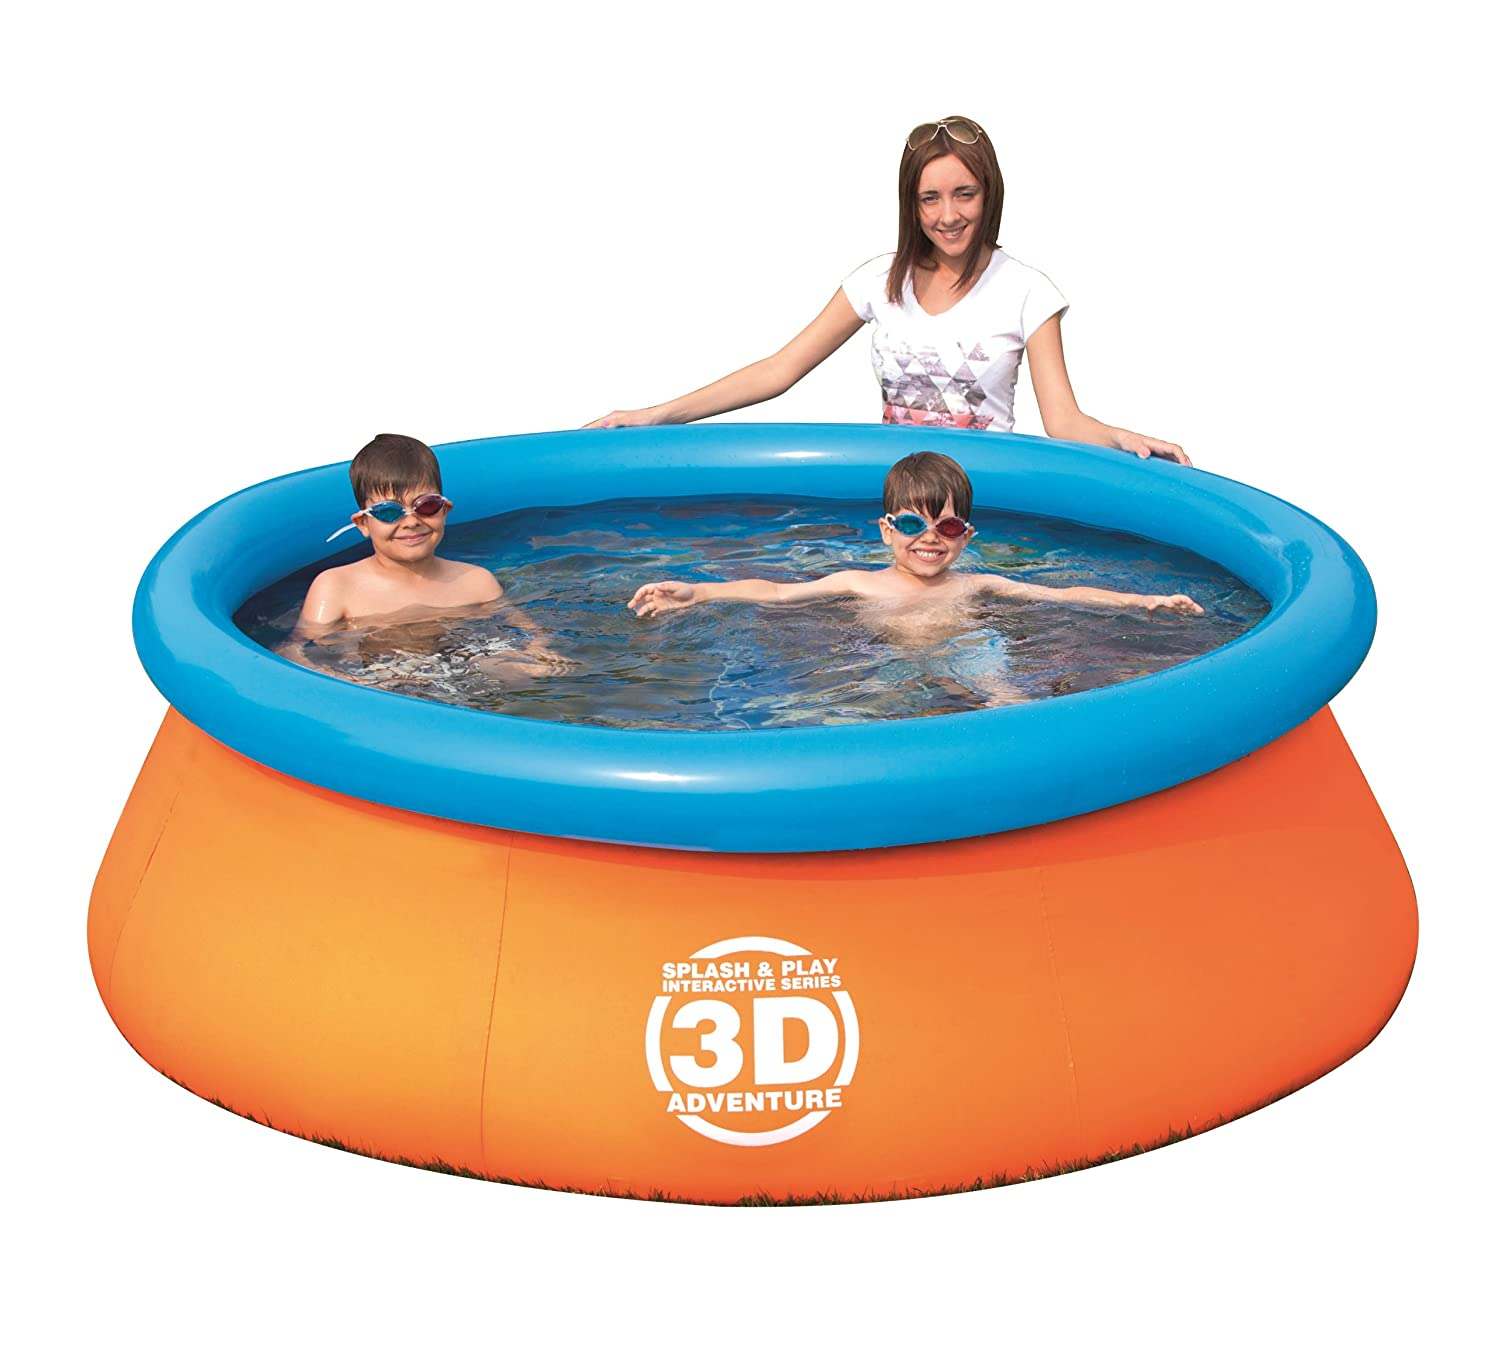 Bestway Fast Set Pool 3D Adventure 213 x 66cm